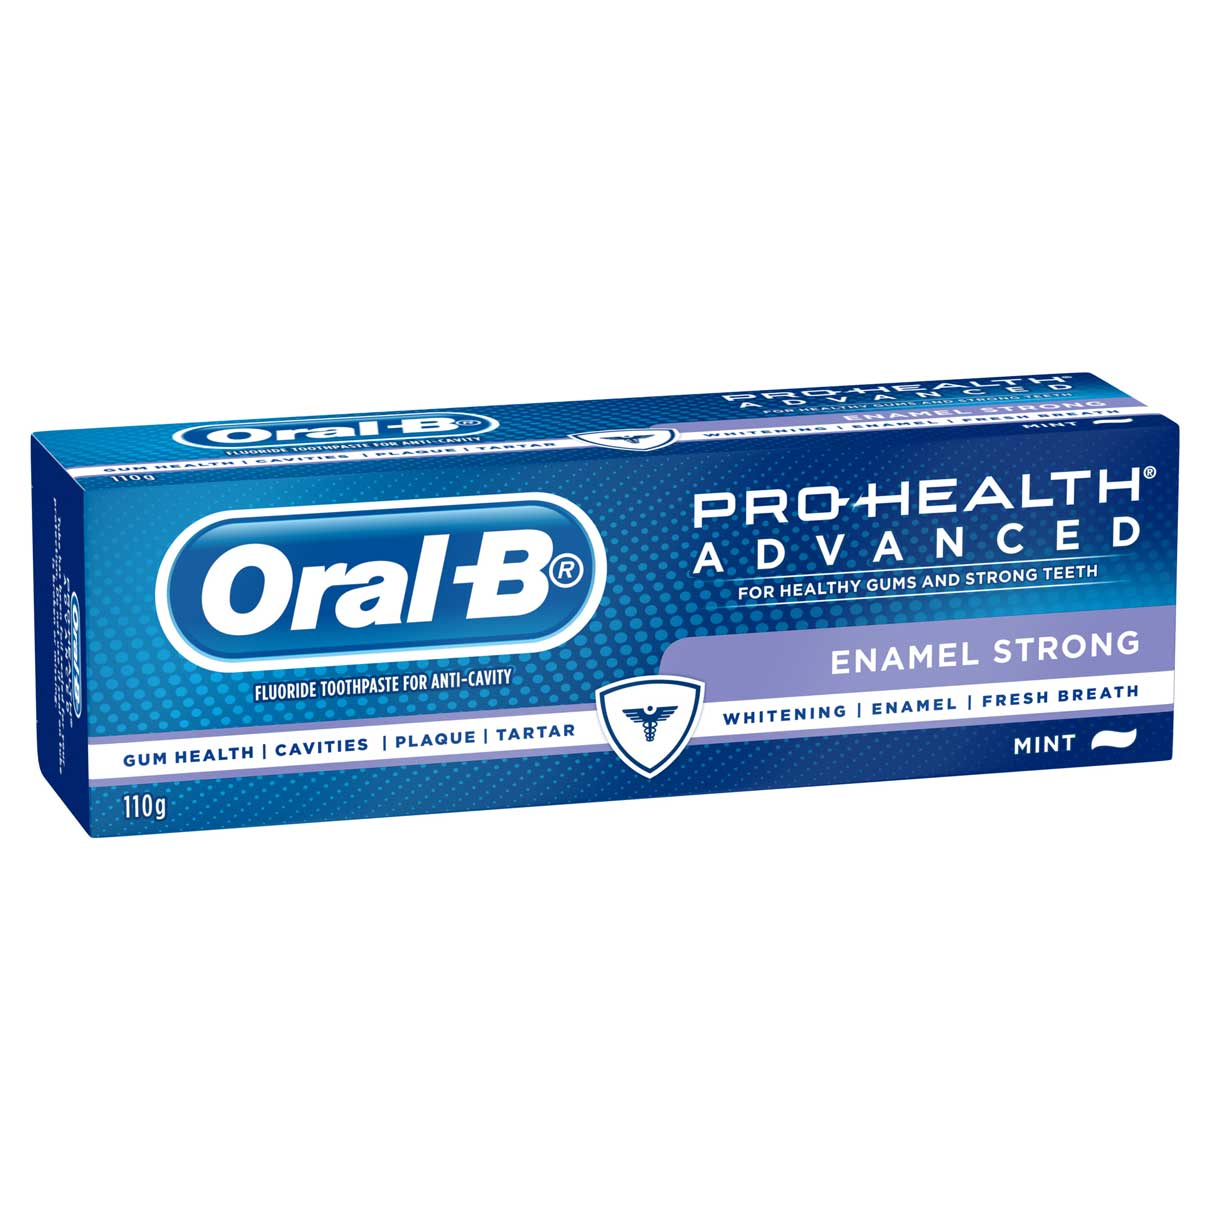 Oral-B Pro Health Enamel Strong